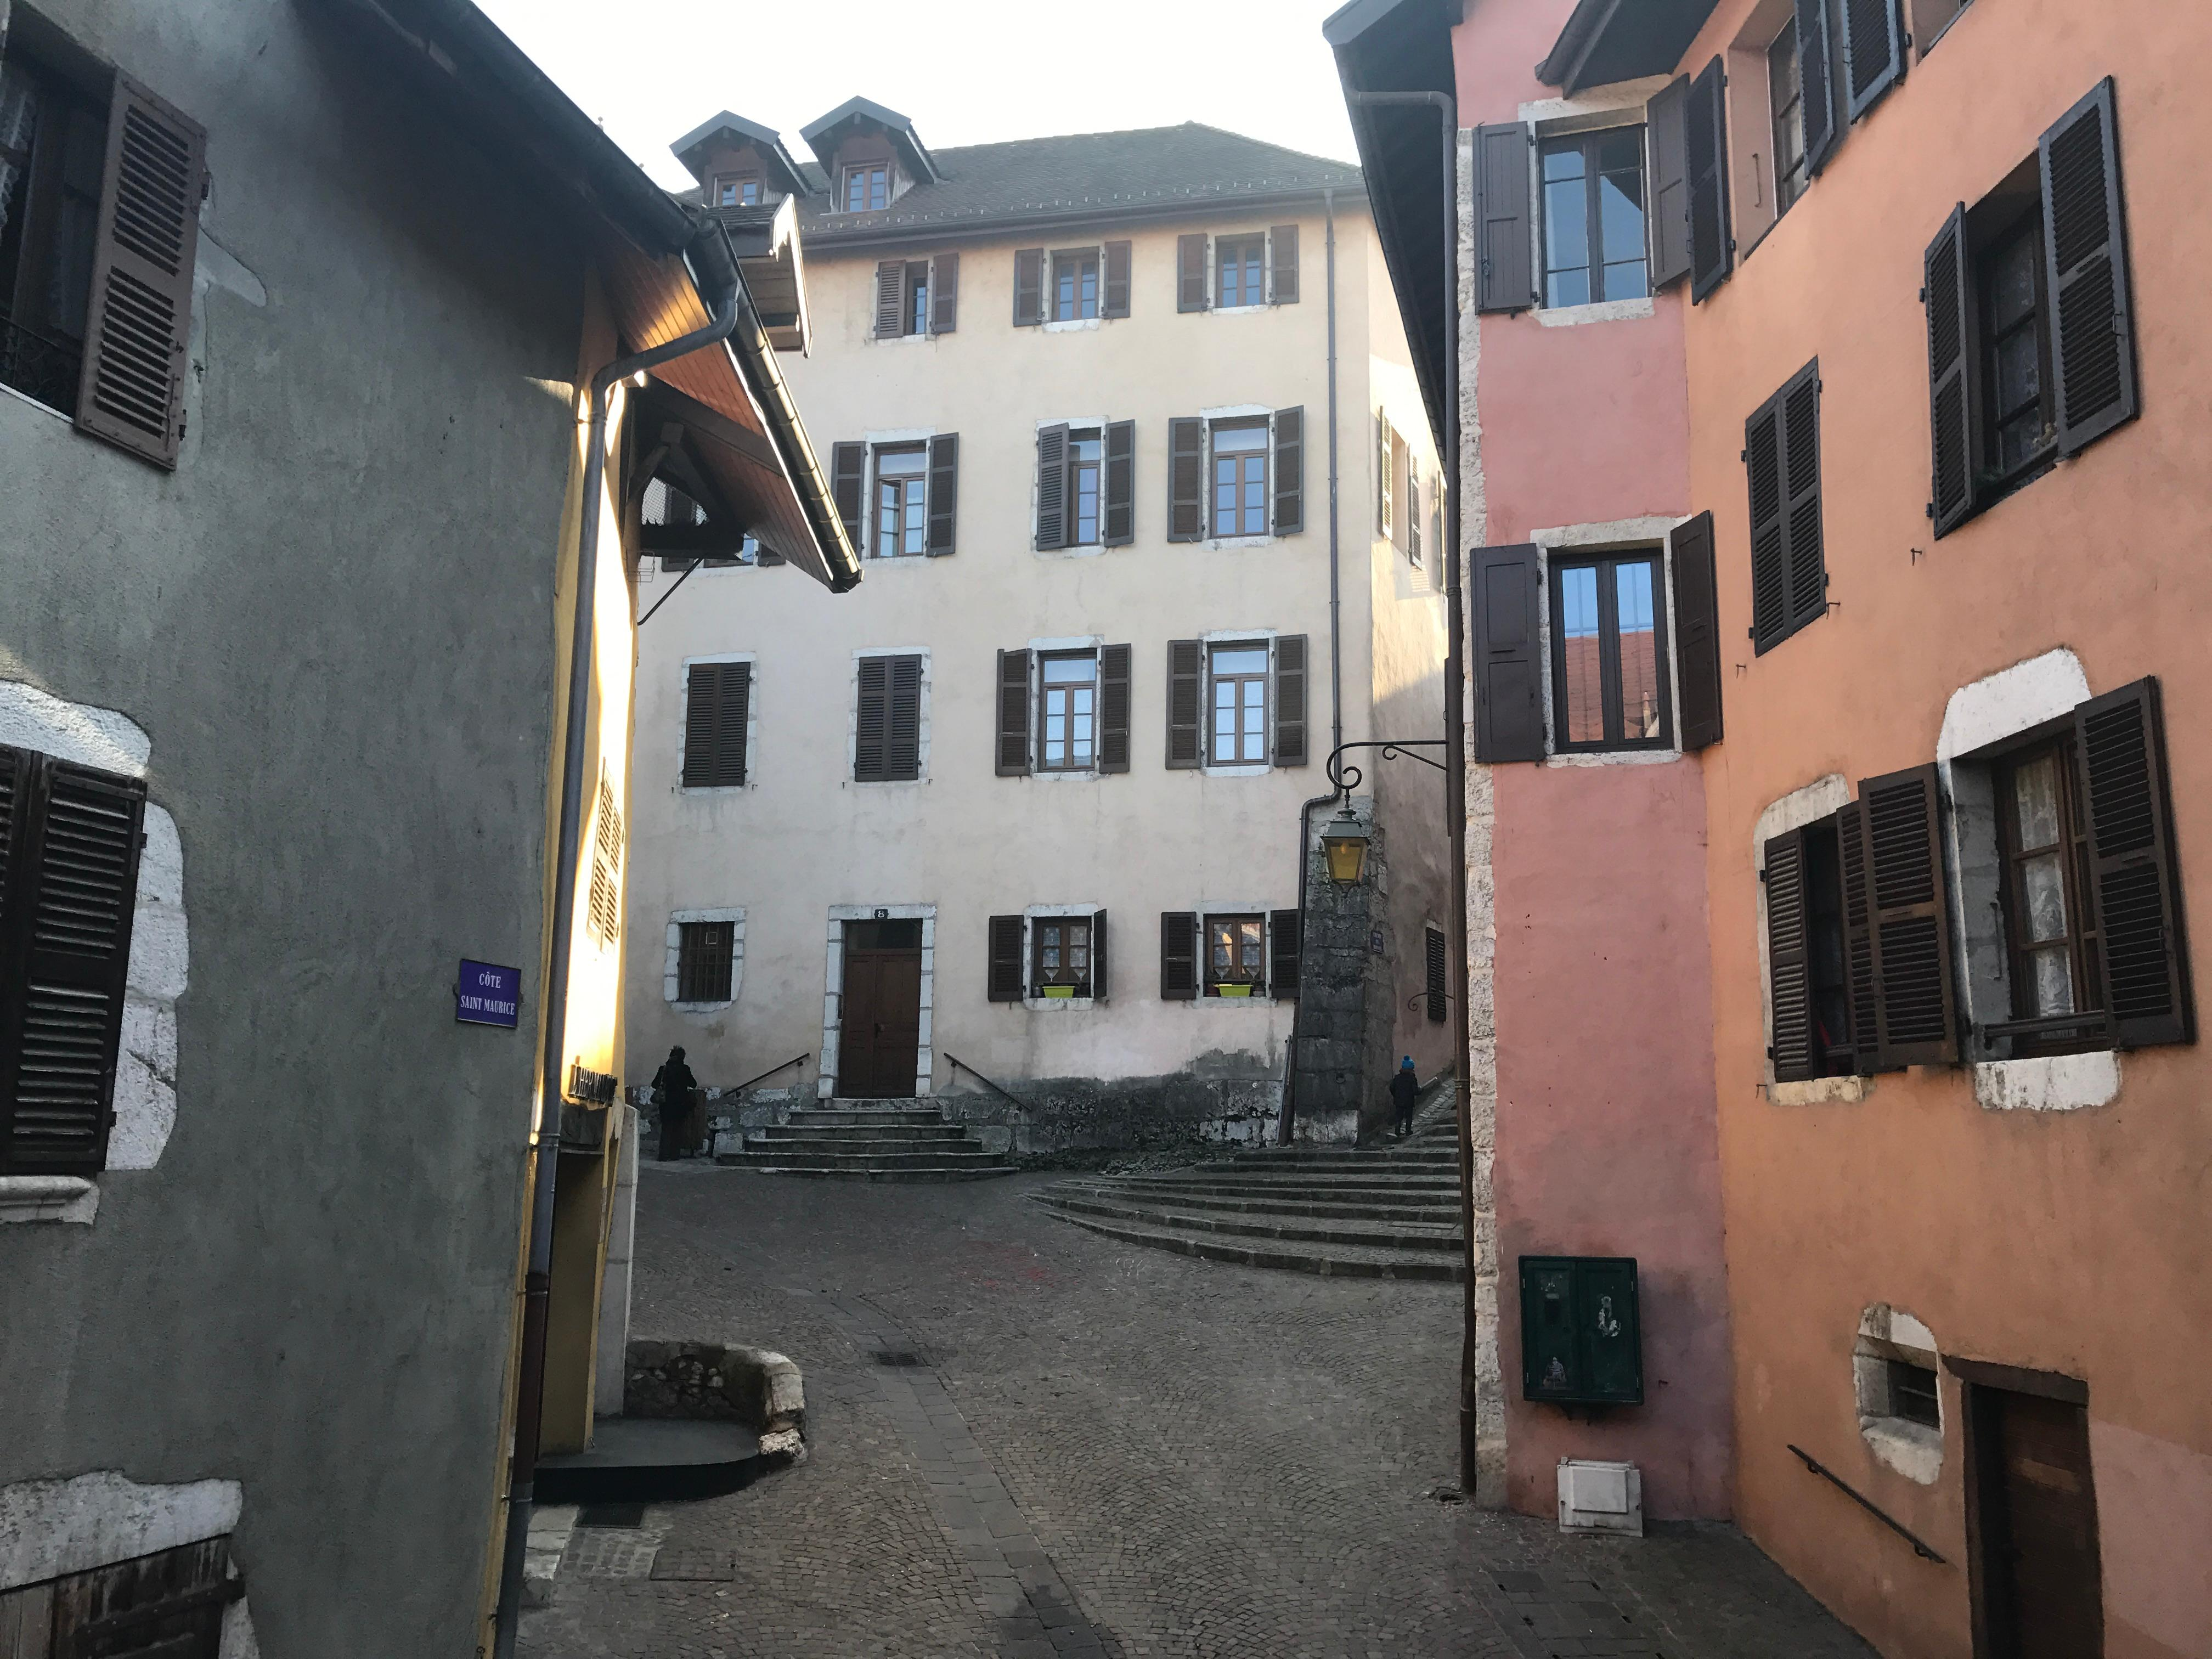 View from balcony (faces away from main pedestrian street)